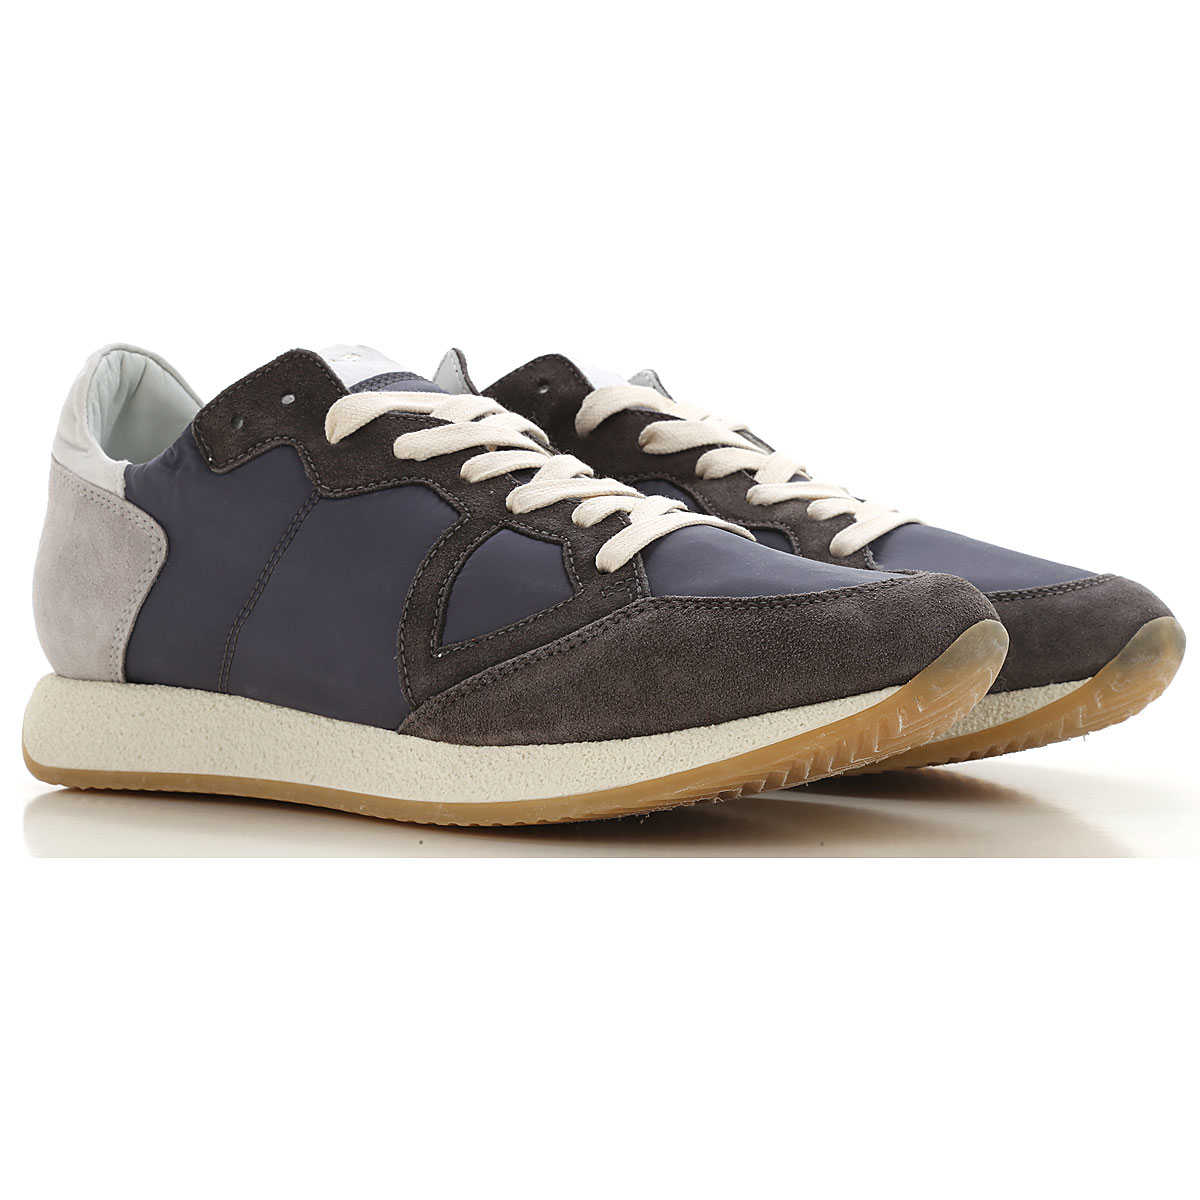 Philippe Model Sneakers for Men On Sale Dirty Grey SE - GOOFASH